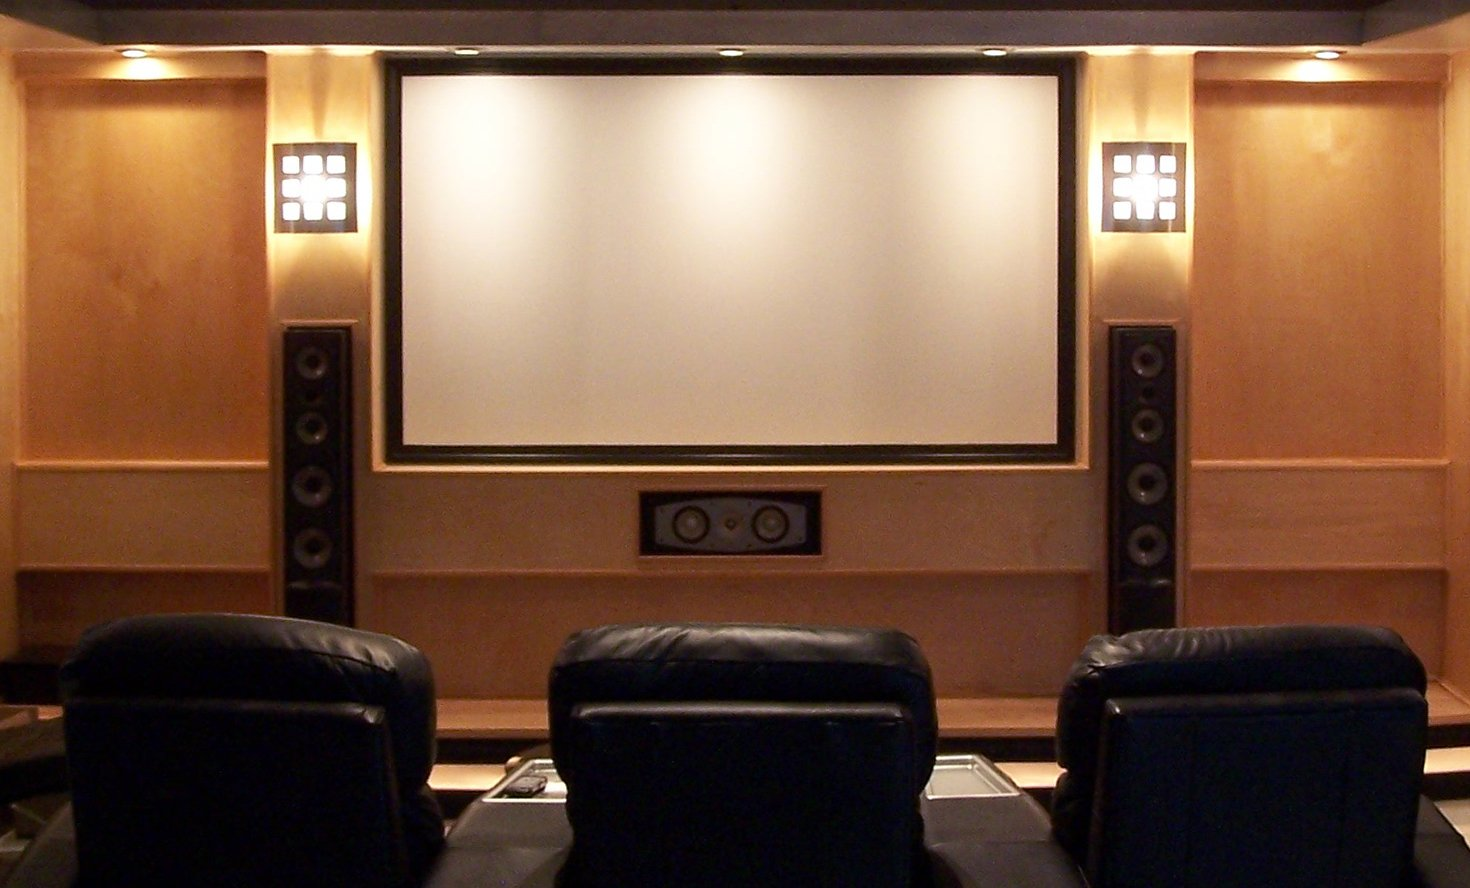 Telly Wall Install Reviews Tv Home Theater Installation Atlanta How To System